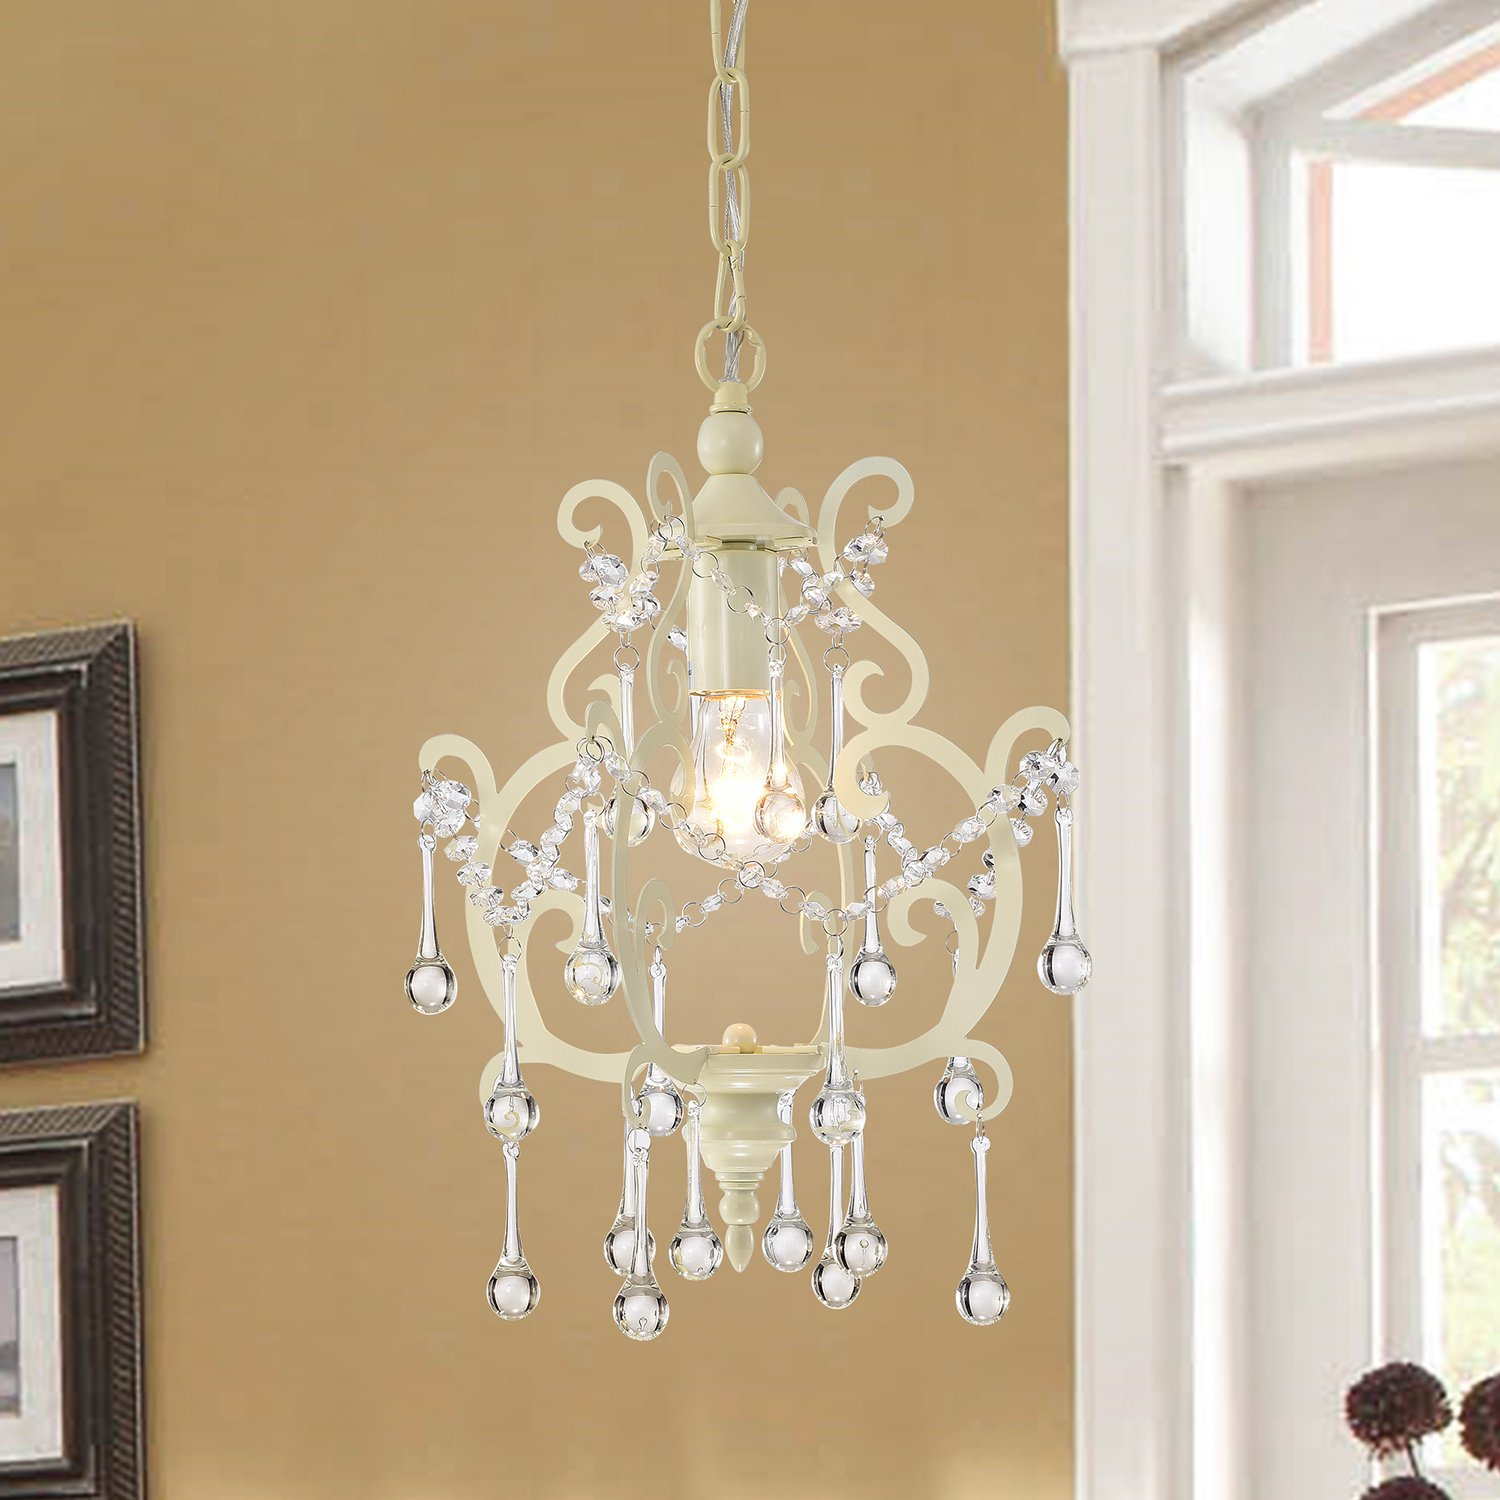 Edvivi 1-Light Ivory White Chandelier Pendant Light Fixture with Raindrop Crystals Glam Lighting